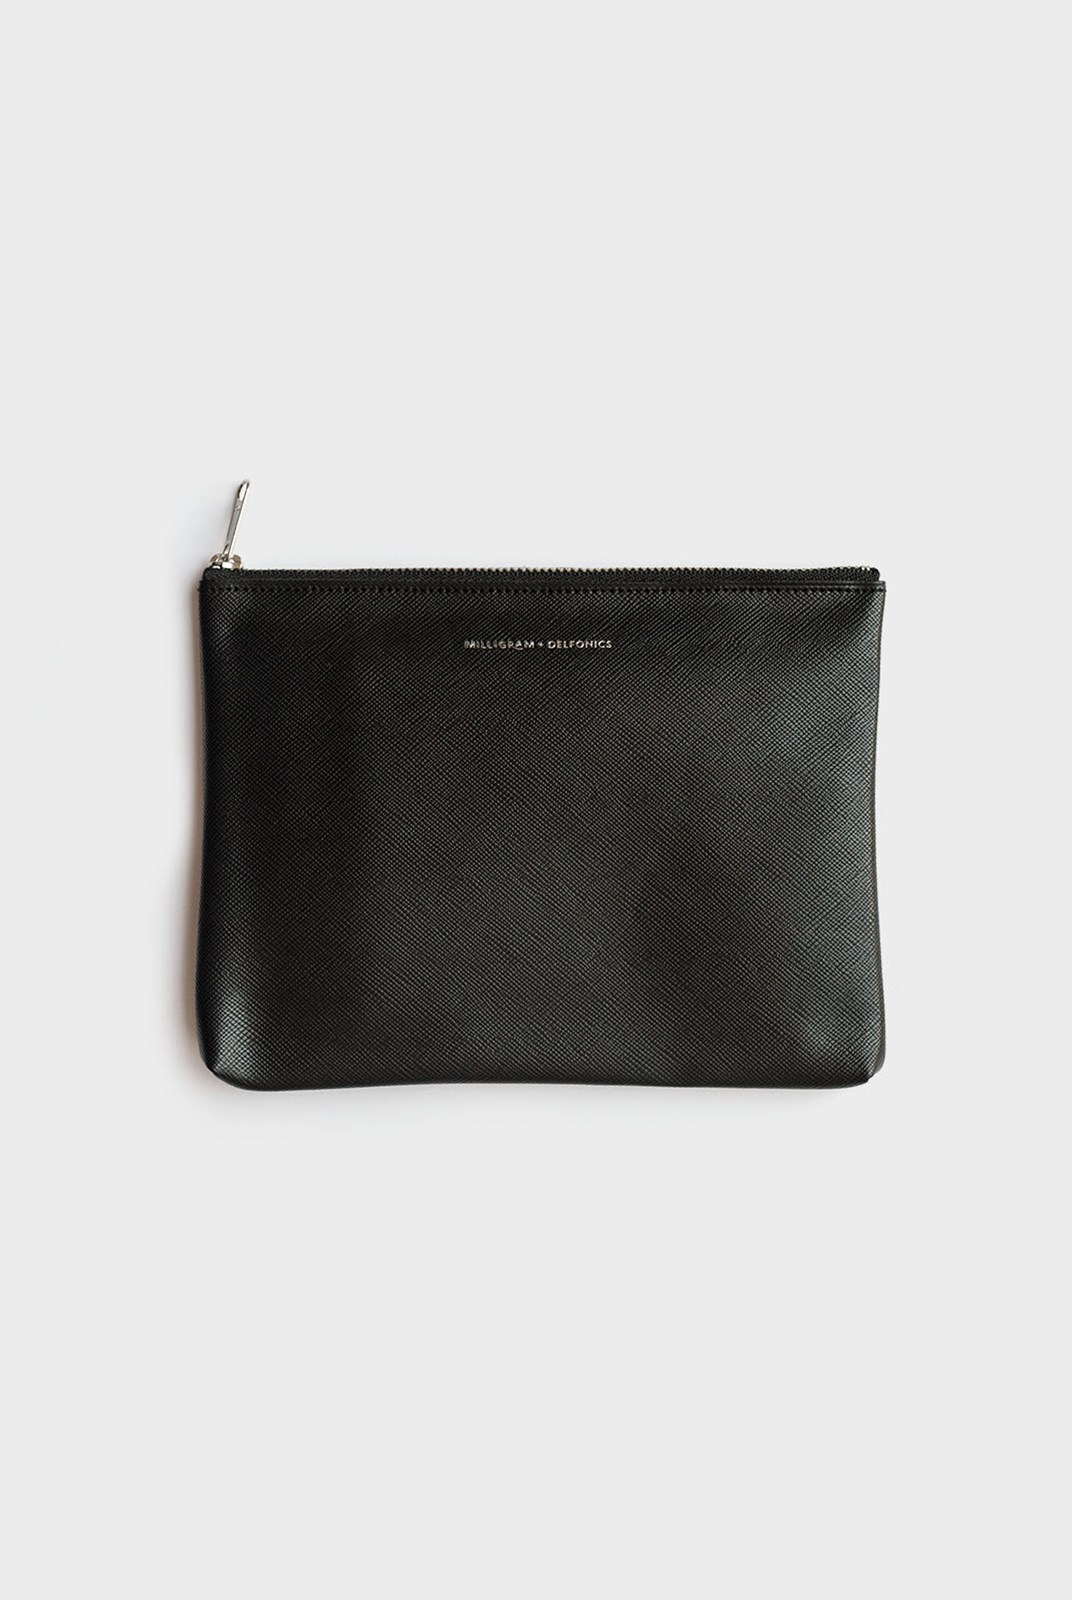 Milligram - Delfonics Special Edition - Pouch - Medium 19.5 x 14cm - Black